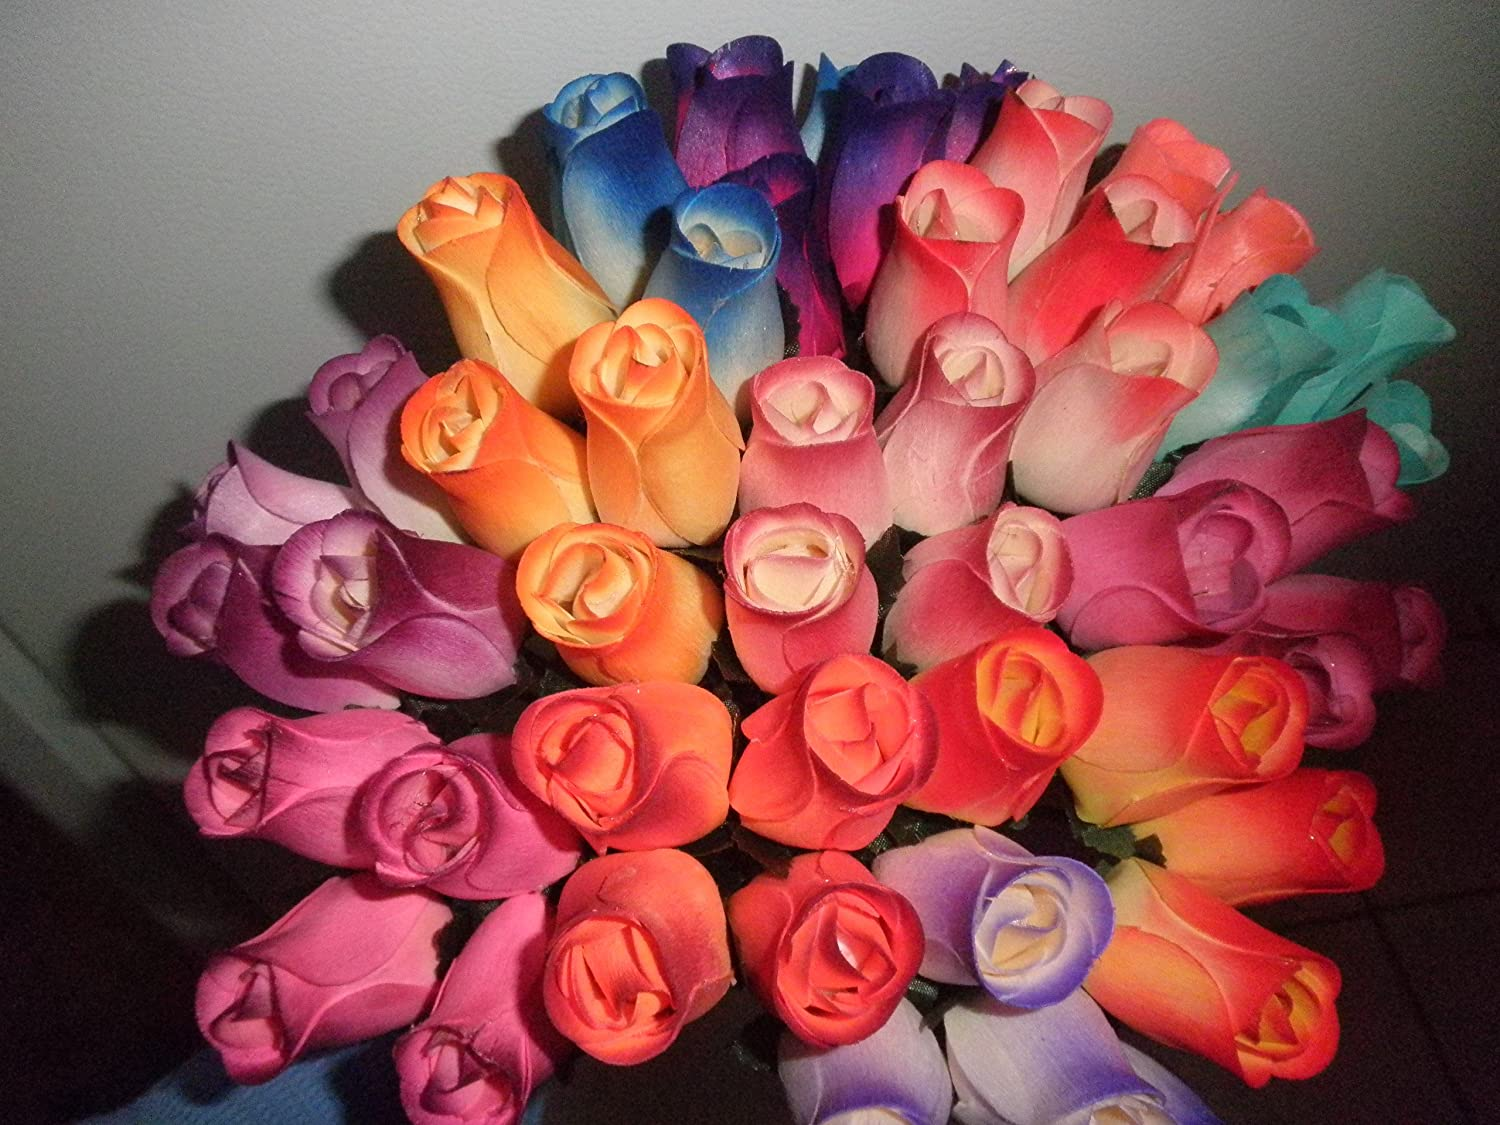 Forever Roses - Small Bud Wooden Roses Bouquet - Dozen